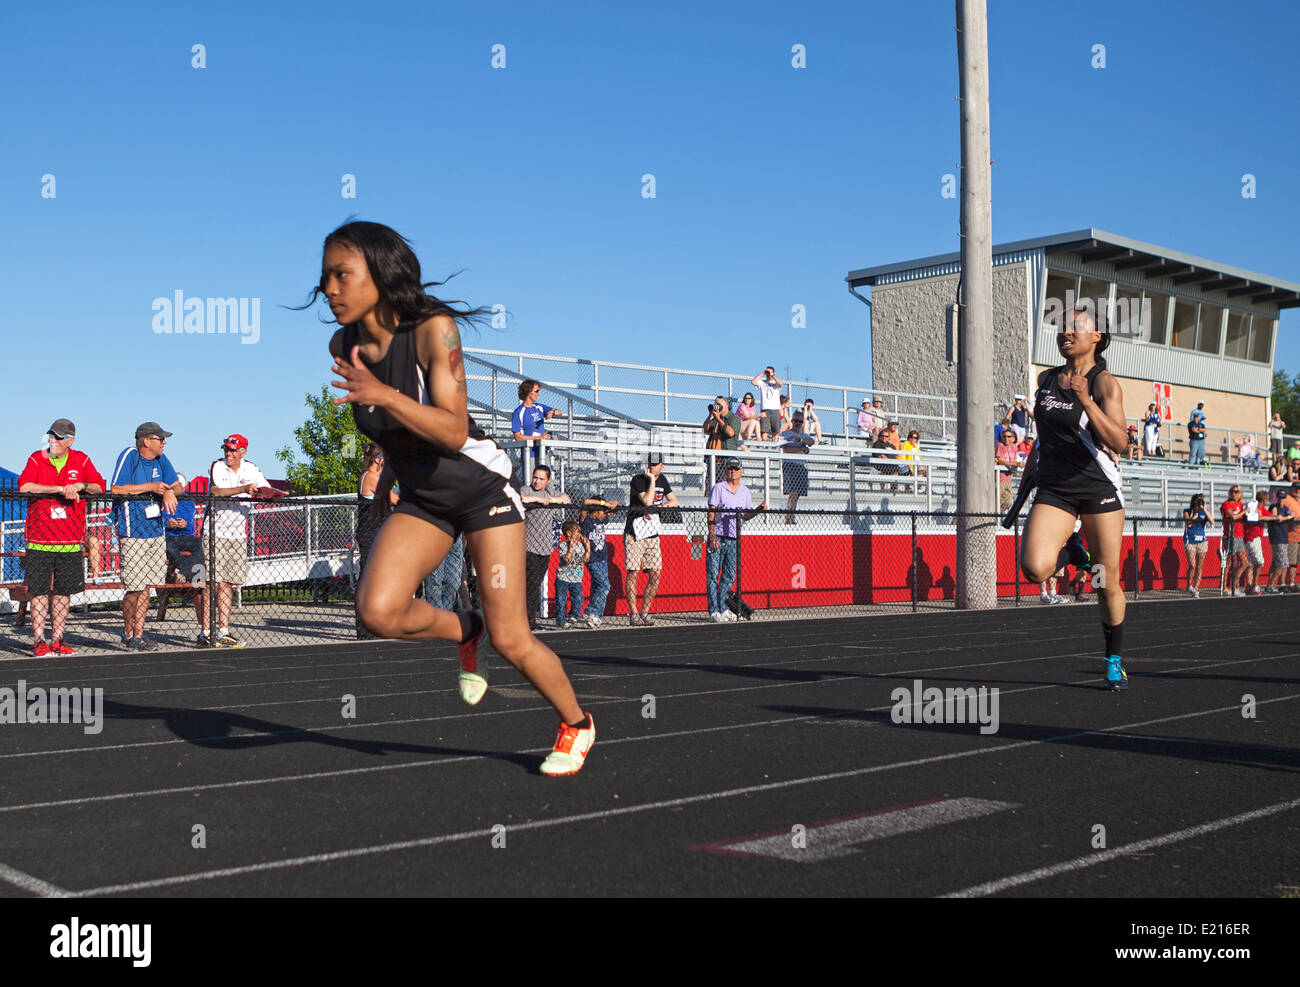 High school athletes compete in a track and field meet in Milwaukee, Wisconsin, USA. - Stock Image